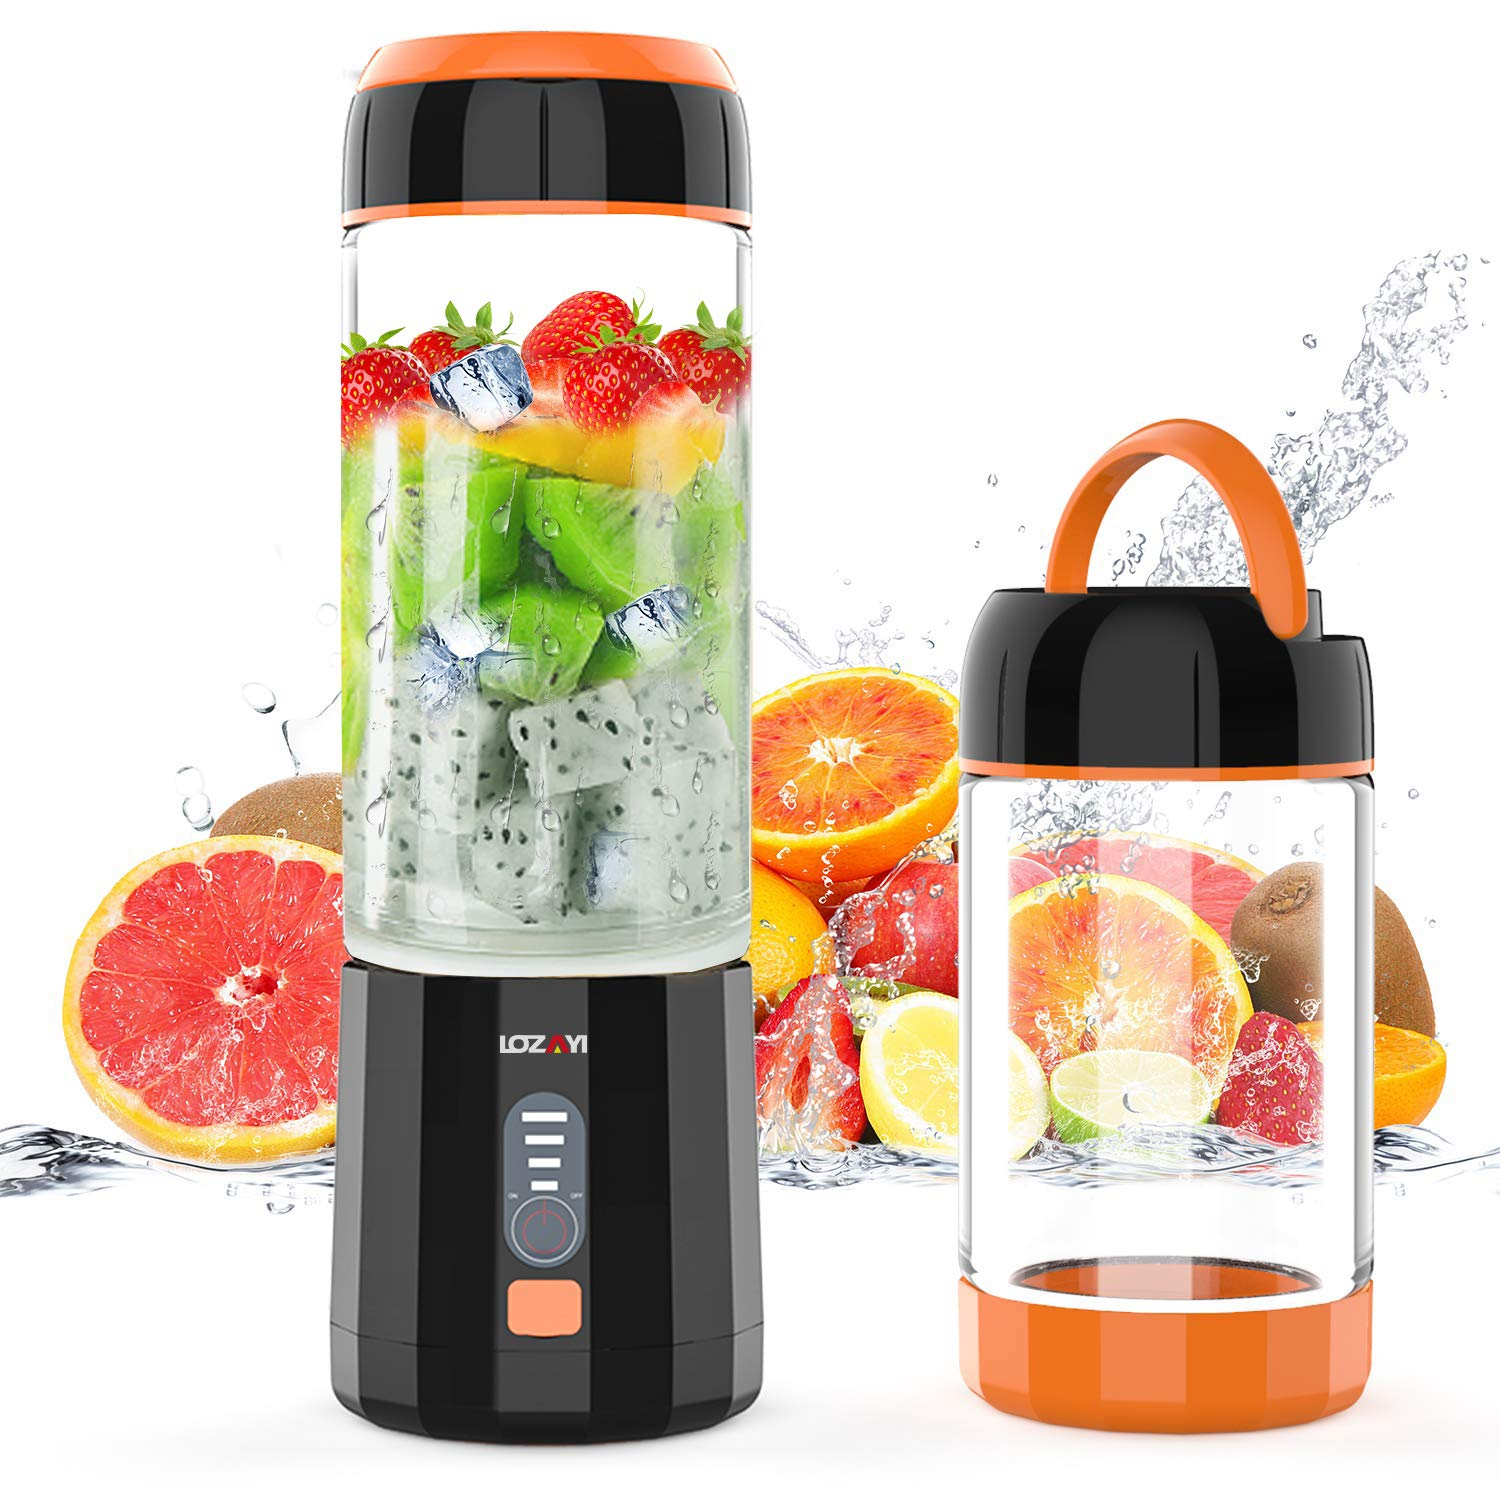 Smoothie Blender, LOZAYI Portable Blender Travel USB Rechargeable Juicer Cup for Shakes and Smoothies, Cordless Small Personal Blender Fruit Mixer Mini Blender with Led Displayer for Outdoor Travel Home Office (Orange) by LOZAYI